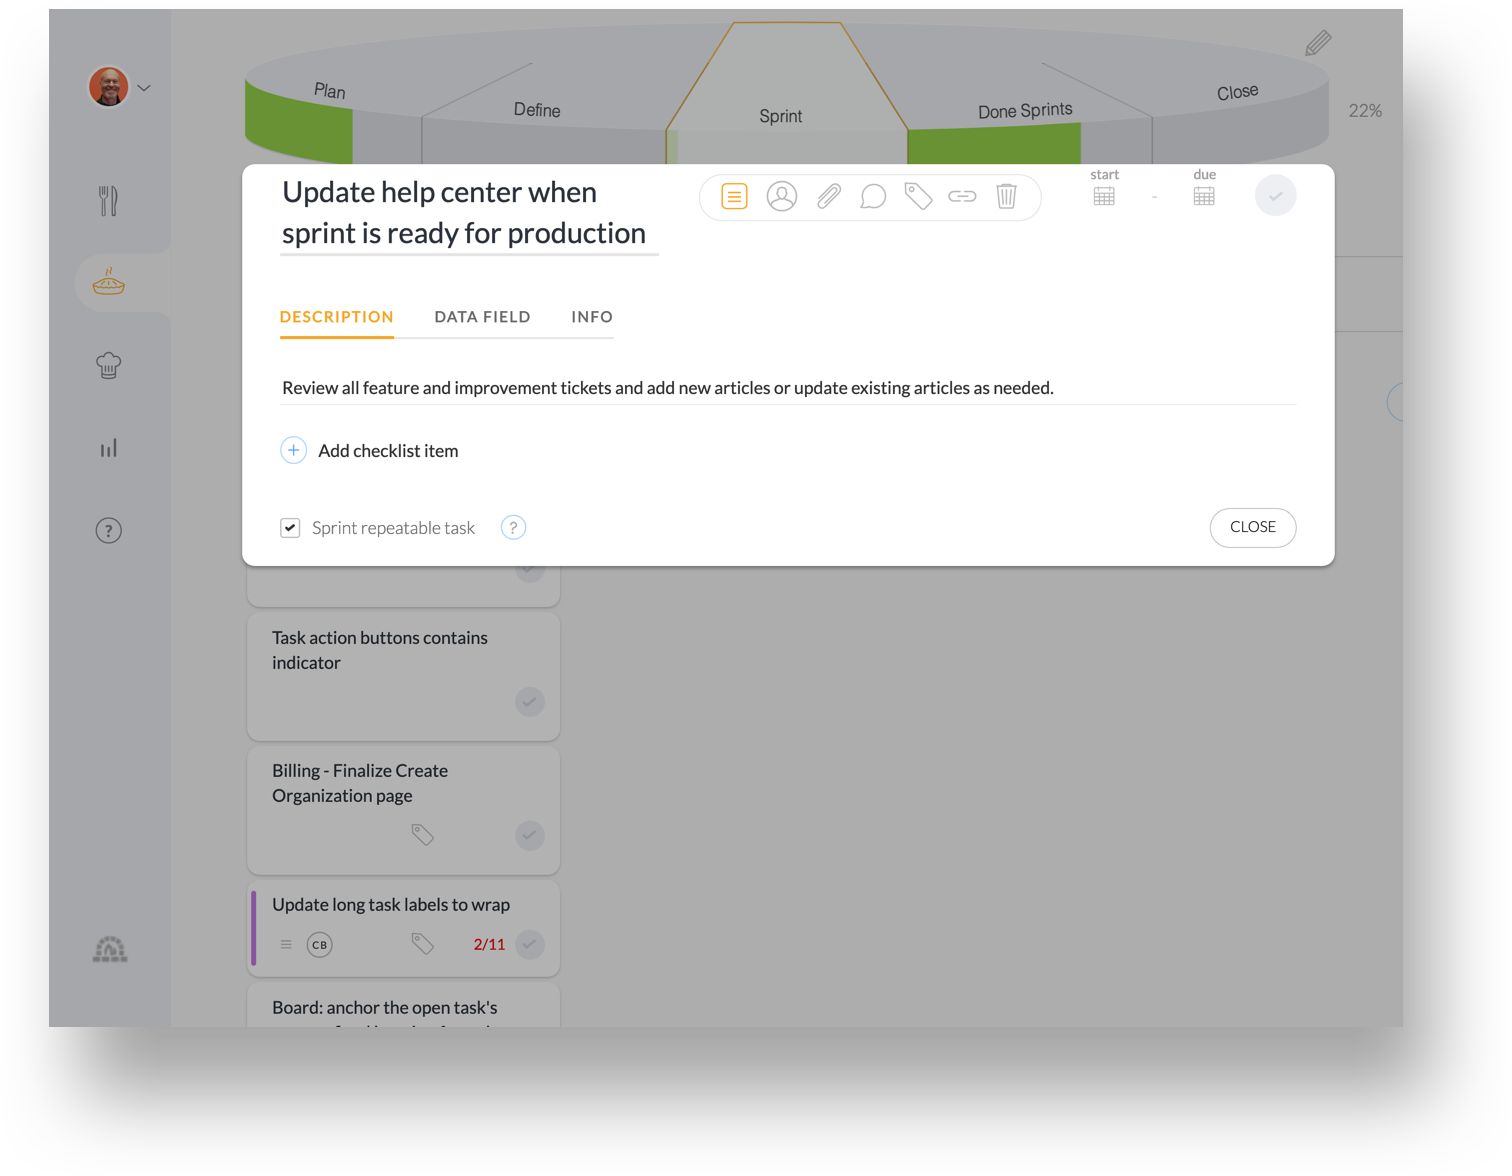 "Bonus: Sprints can include repeatable process steps. - Image an agile sprint that automatically pops up reminder tasks, such as ""Update help center when sprint is ready for production"". You can now sprinkle process steps that improve results in each sprint."